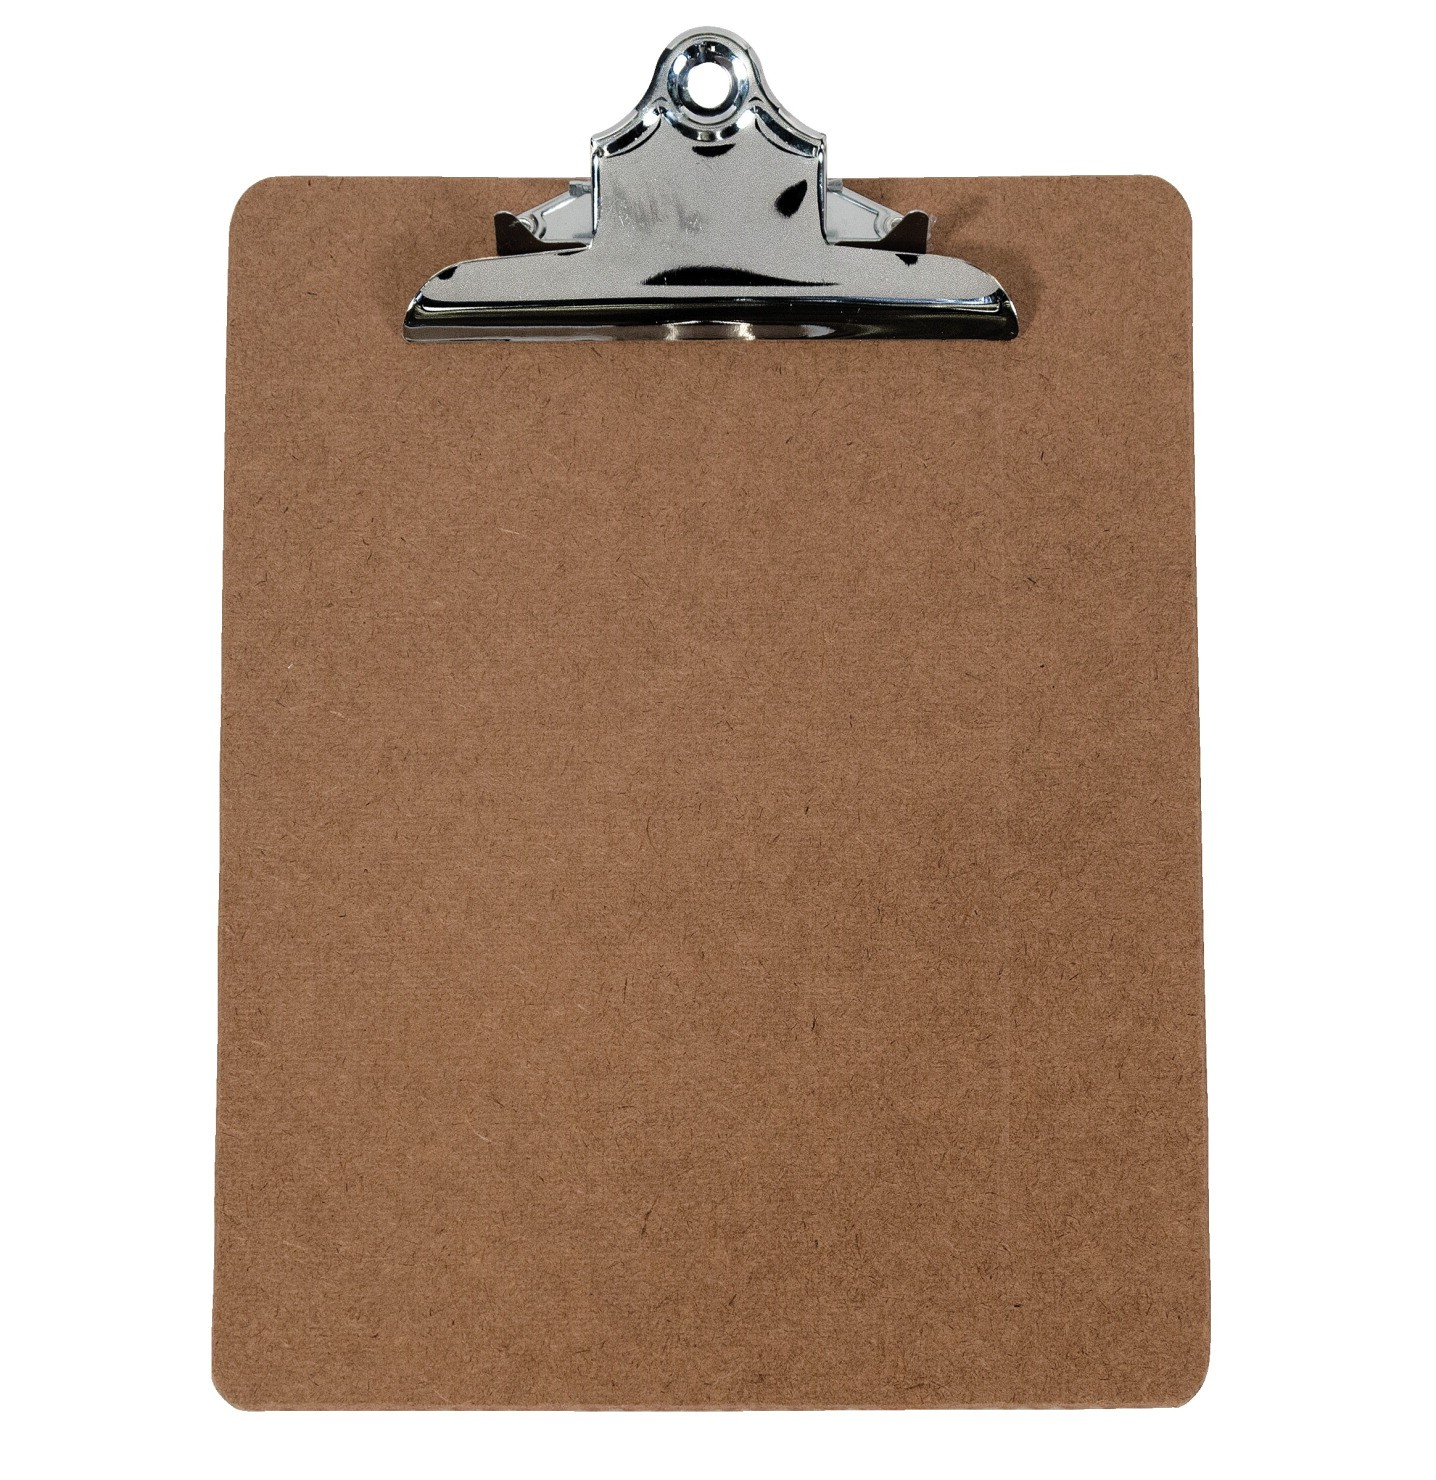 9 X 15-1/2, Clipboard, Legal Size, Brown